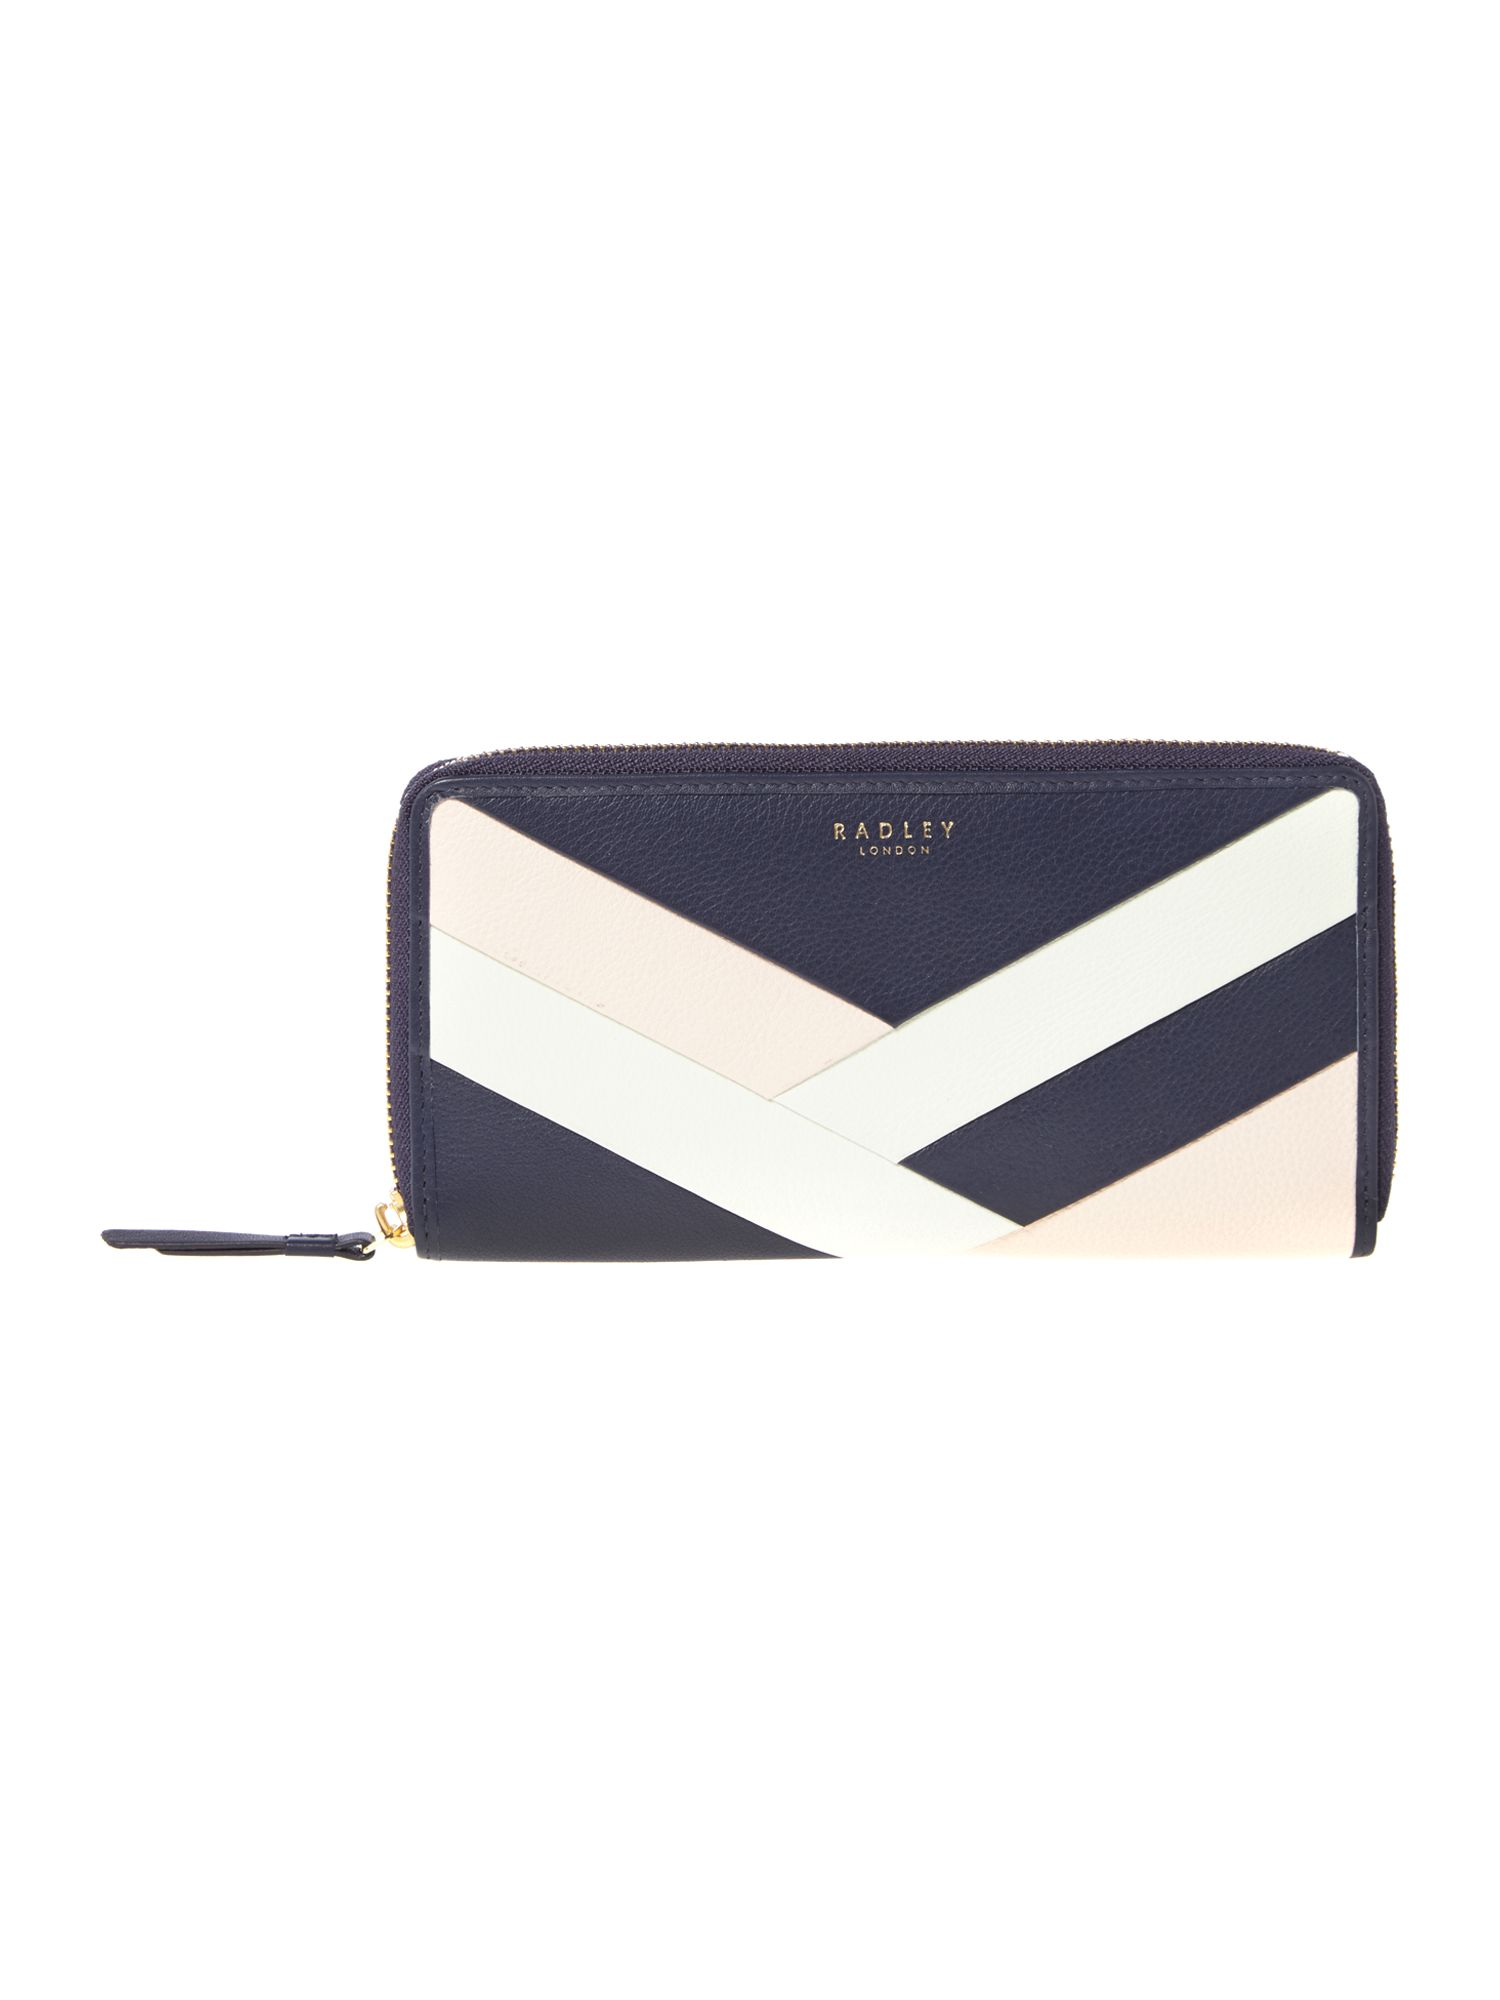 Radley Singer street large zip around matinee purse Navy